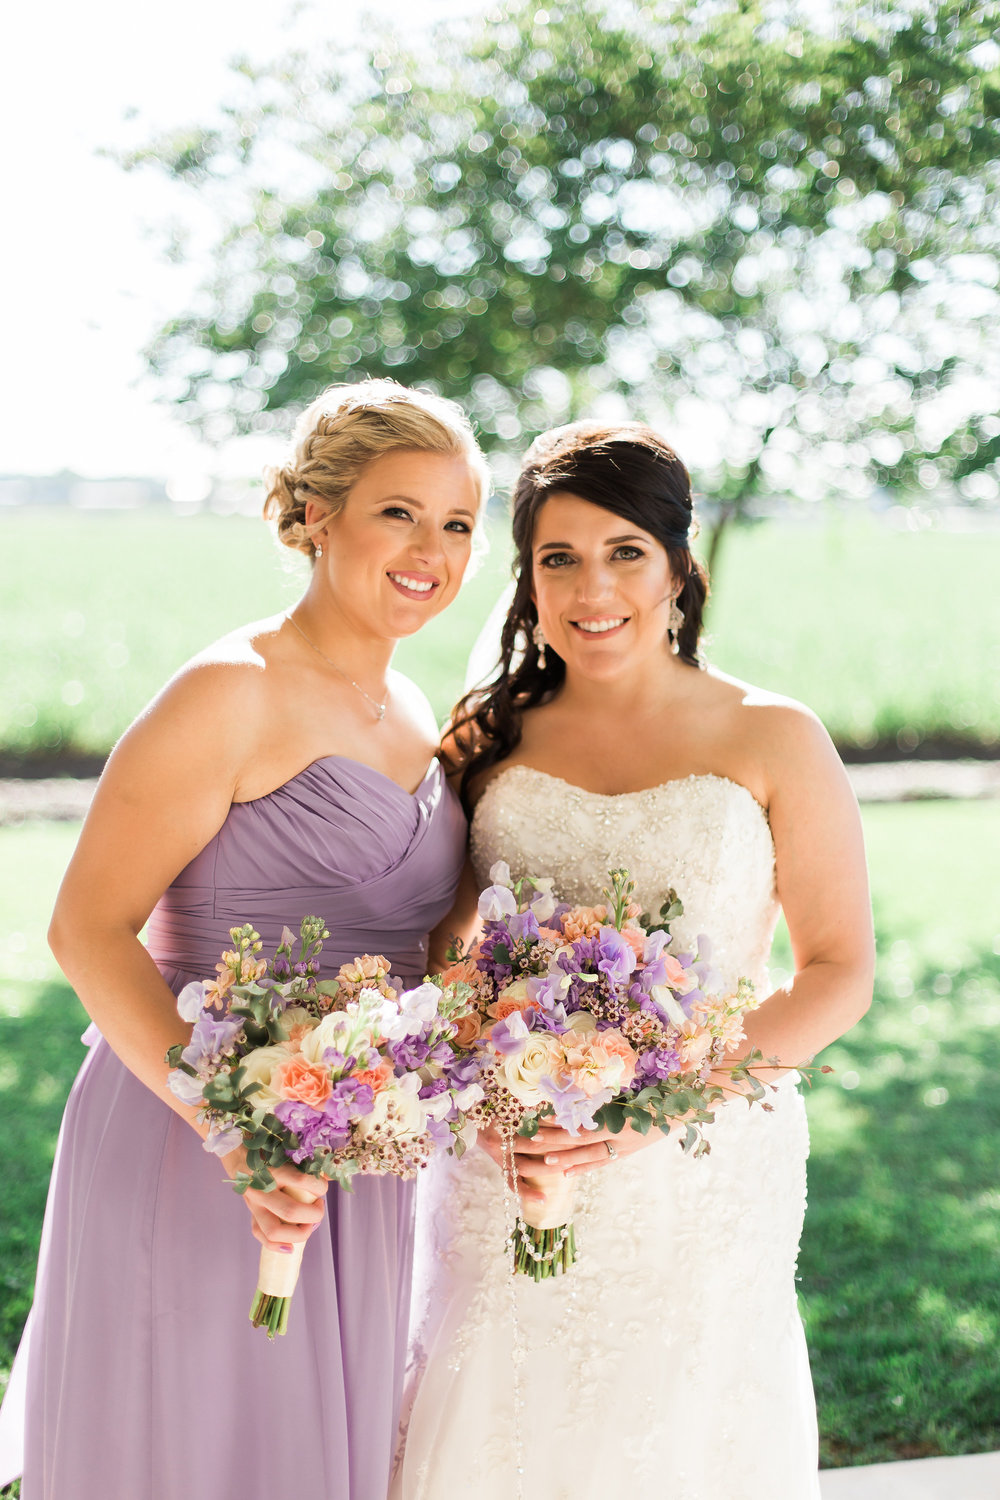 The bride and her bridesmaid!    Photo by Kaylie Nicole Photography